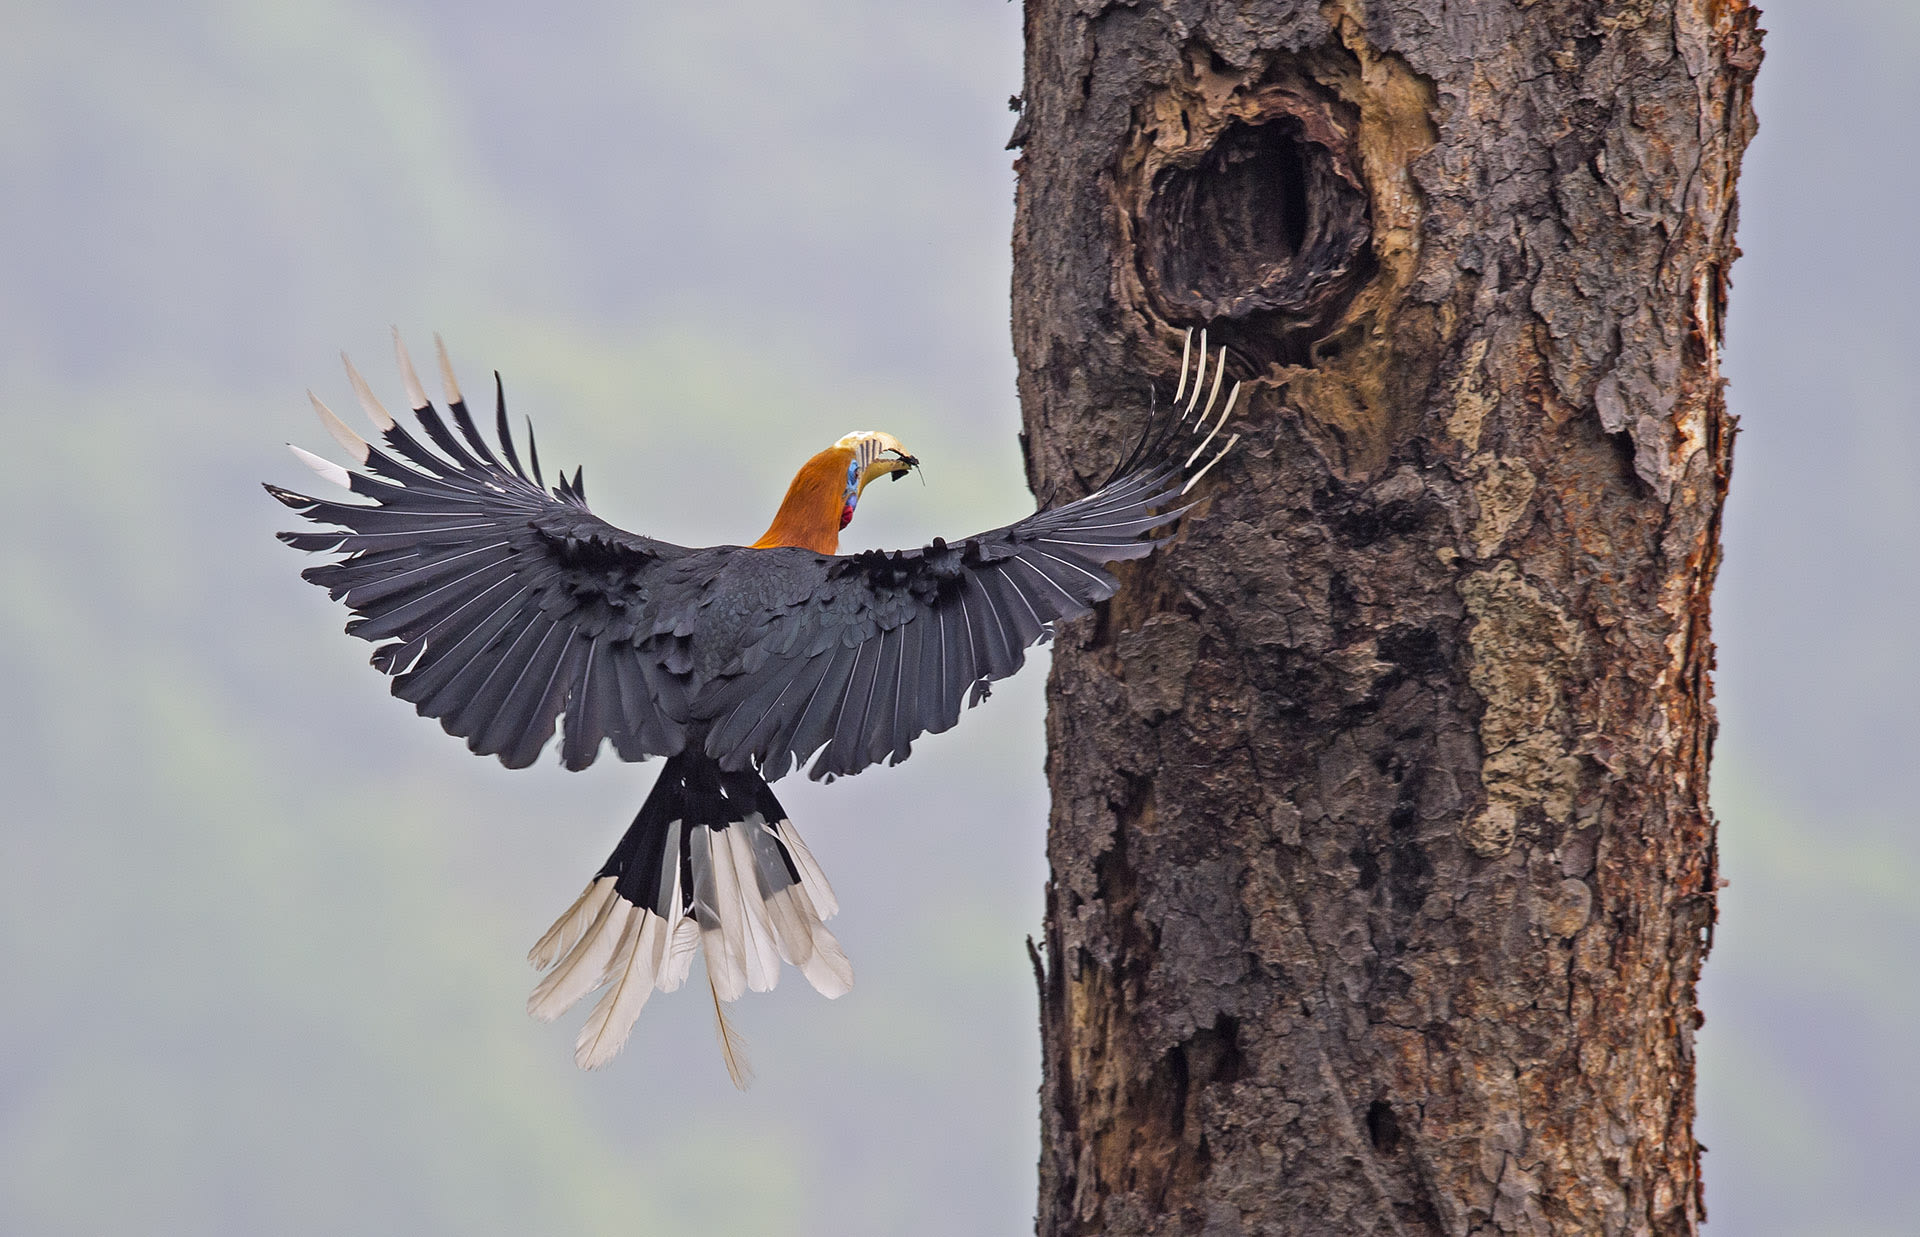 It is the task of the male hornbill to deliver food to the family after the female seals herself in the nest cavity.  Photo: Dhritiman Mukherjee  Cover photo: The rufous-necked hornbill is a medium-sized hornbill that grows up to 120 cm. It is found in some parts of Northeast India at higher elevations. Cover photo: Dhritiman Mukherjee